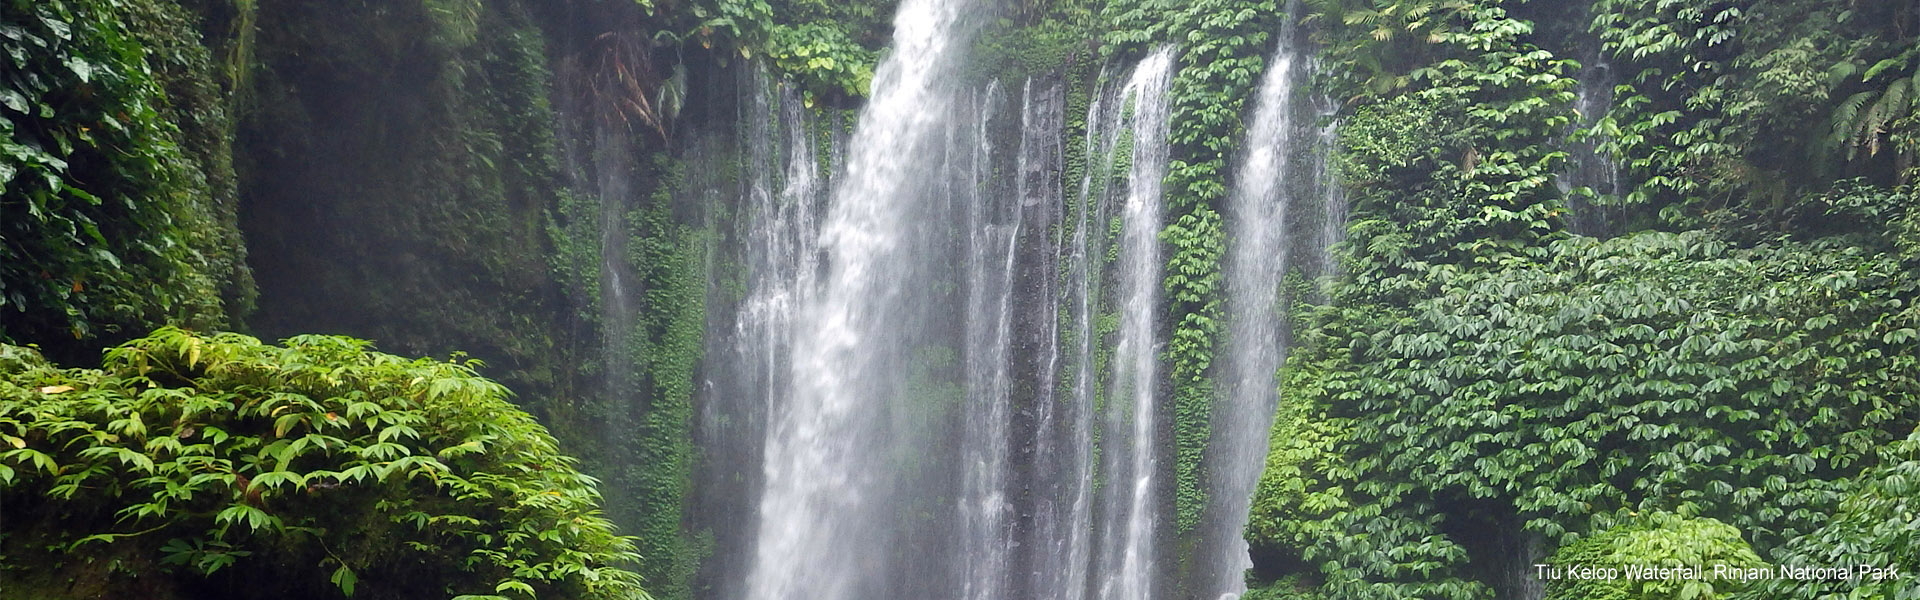 Beautiful Tiu Kelep Waterfall, Rinjani NP, Lombok